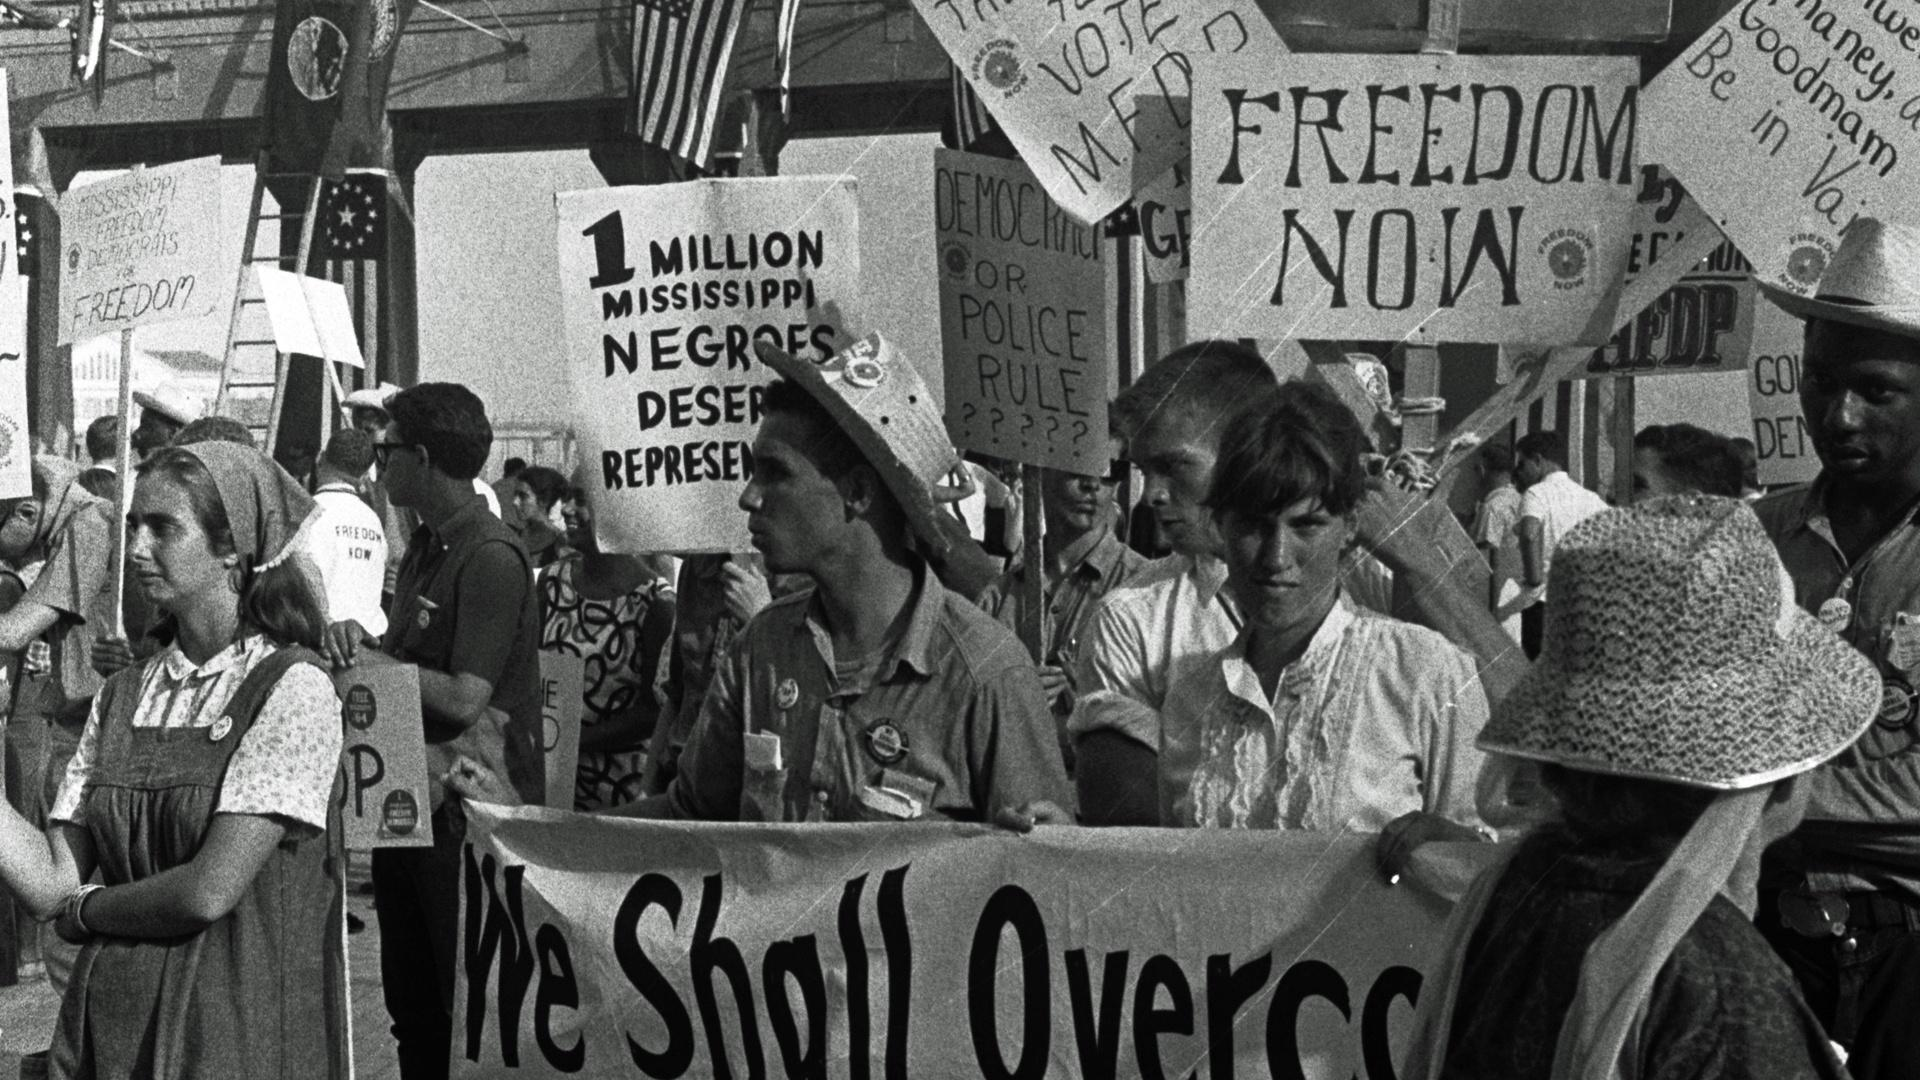 African American and white supporters of the Mississippi Freedom Democratic Party holding signs in front of the convention hall at the 1964 Democratic National Convention, Atlantic City, New Jersey.